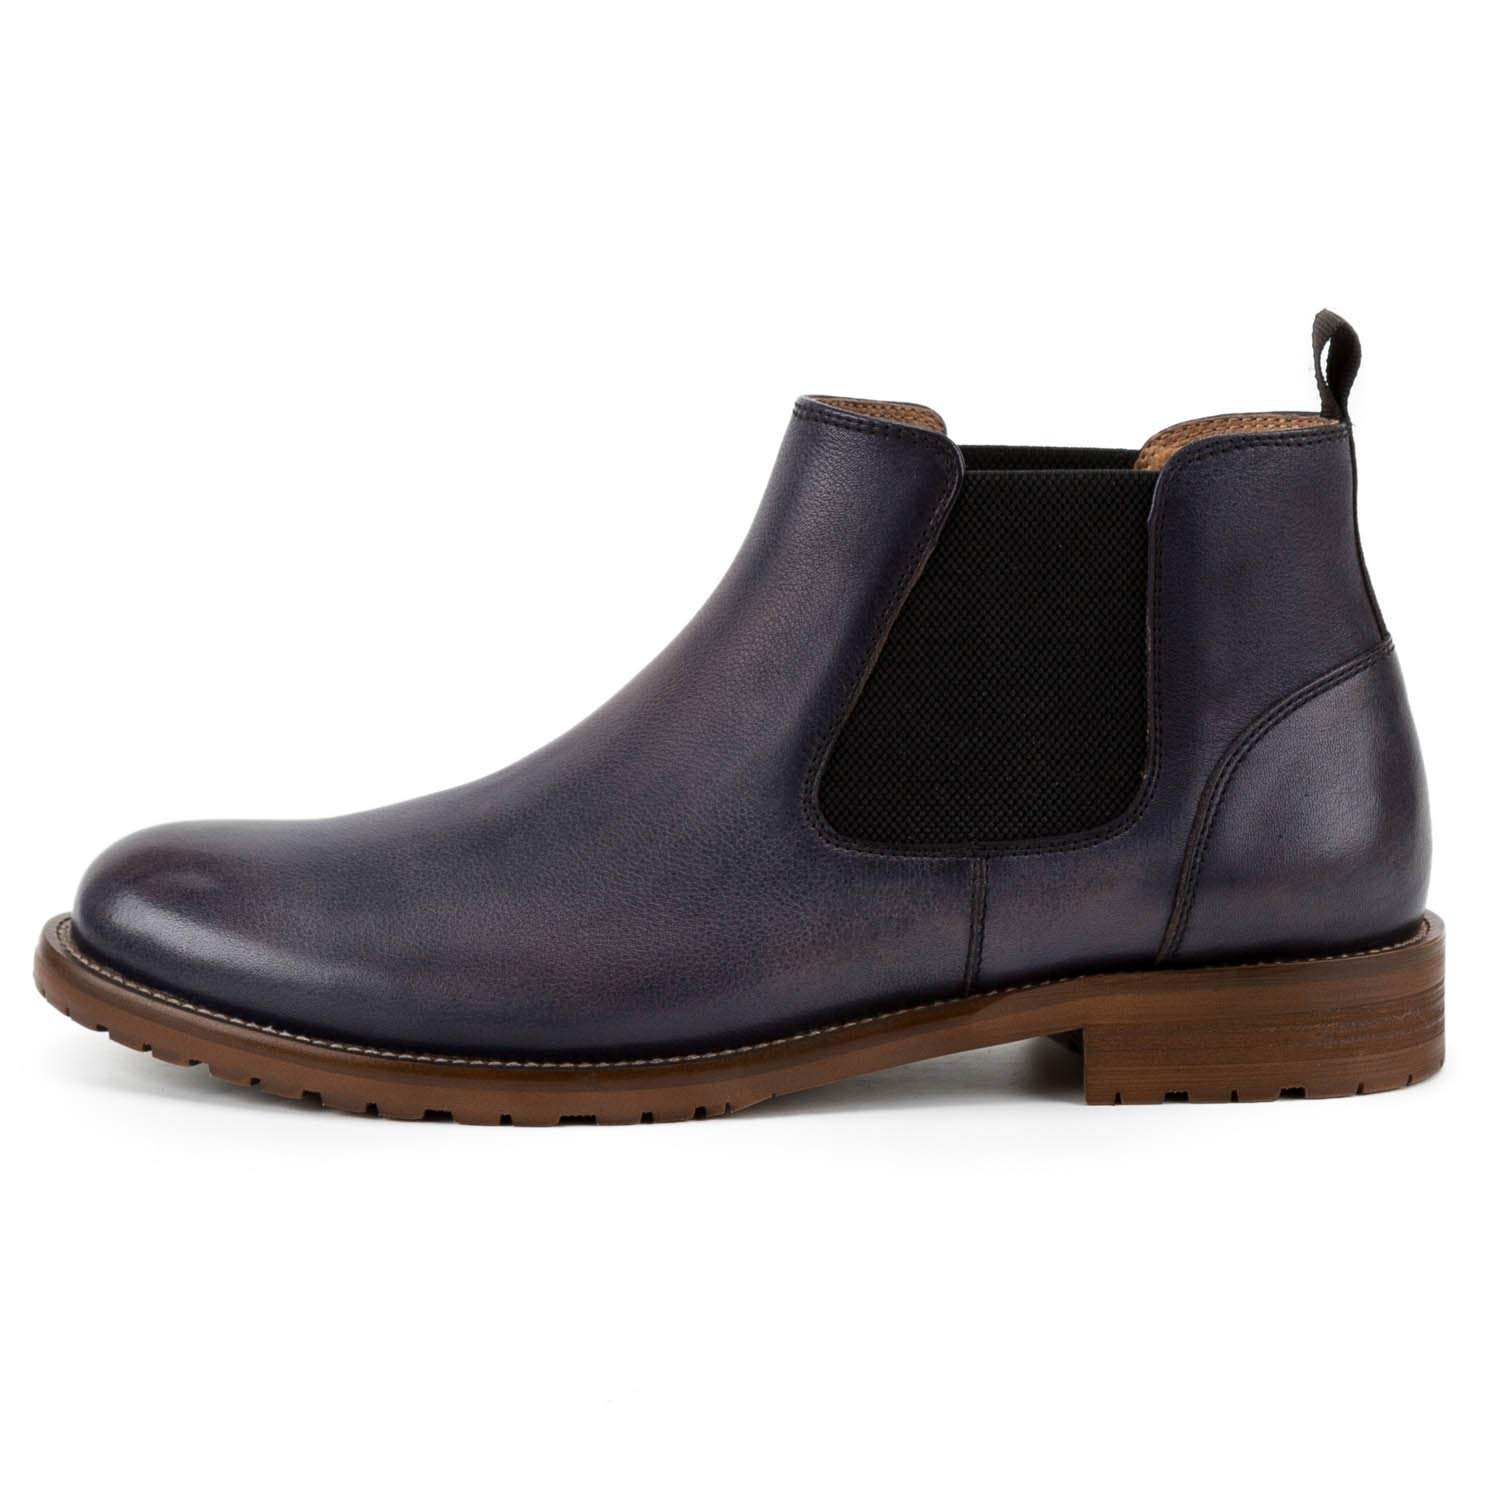 Schuhe house Men es Chelsea Chelsea Chelsea Stiefel Slip On-Dress Stiefel Fashion Work Office Prom Wedding Gifts Stiefel Invierno Hombre 62d739